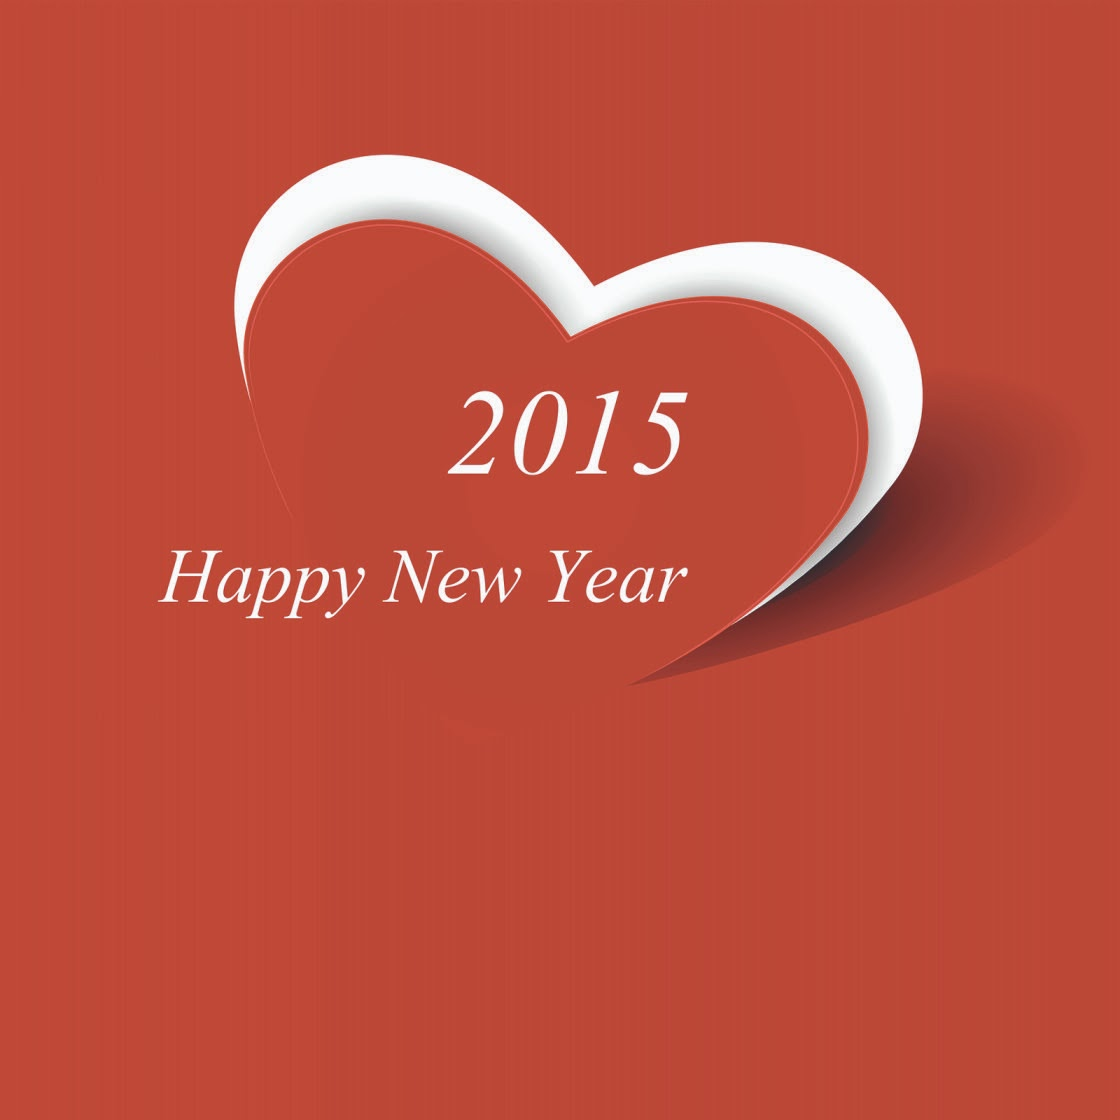 Happy New Year 2015 from DesiStarsClub